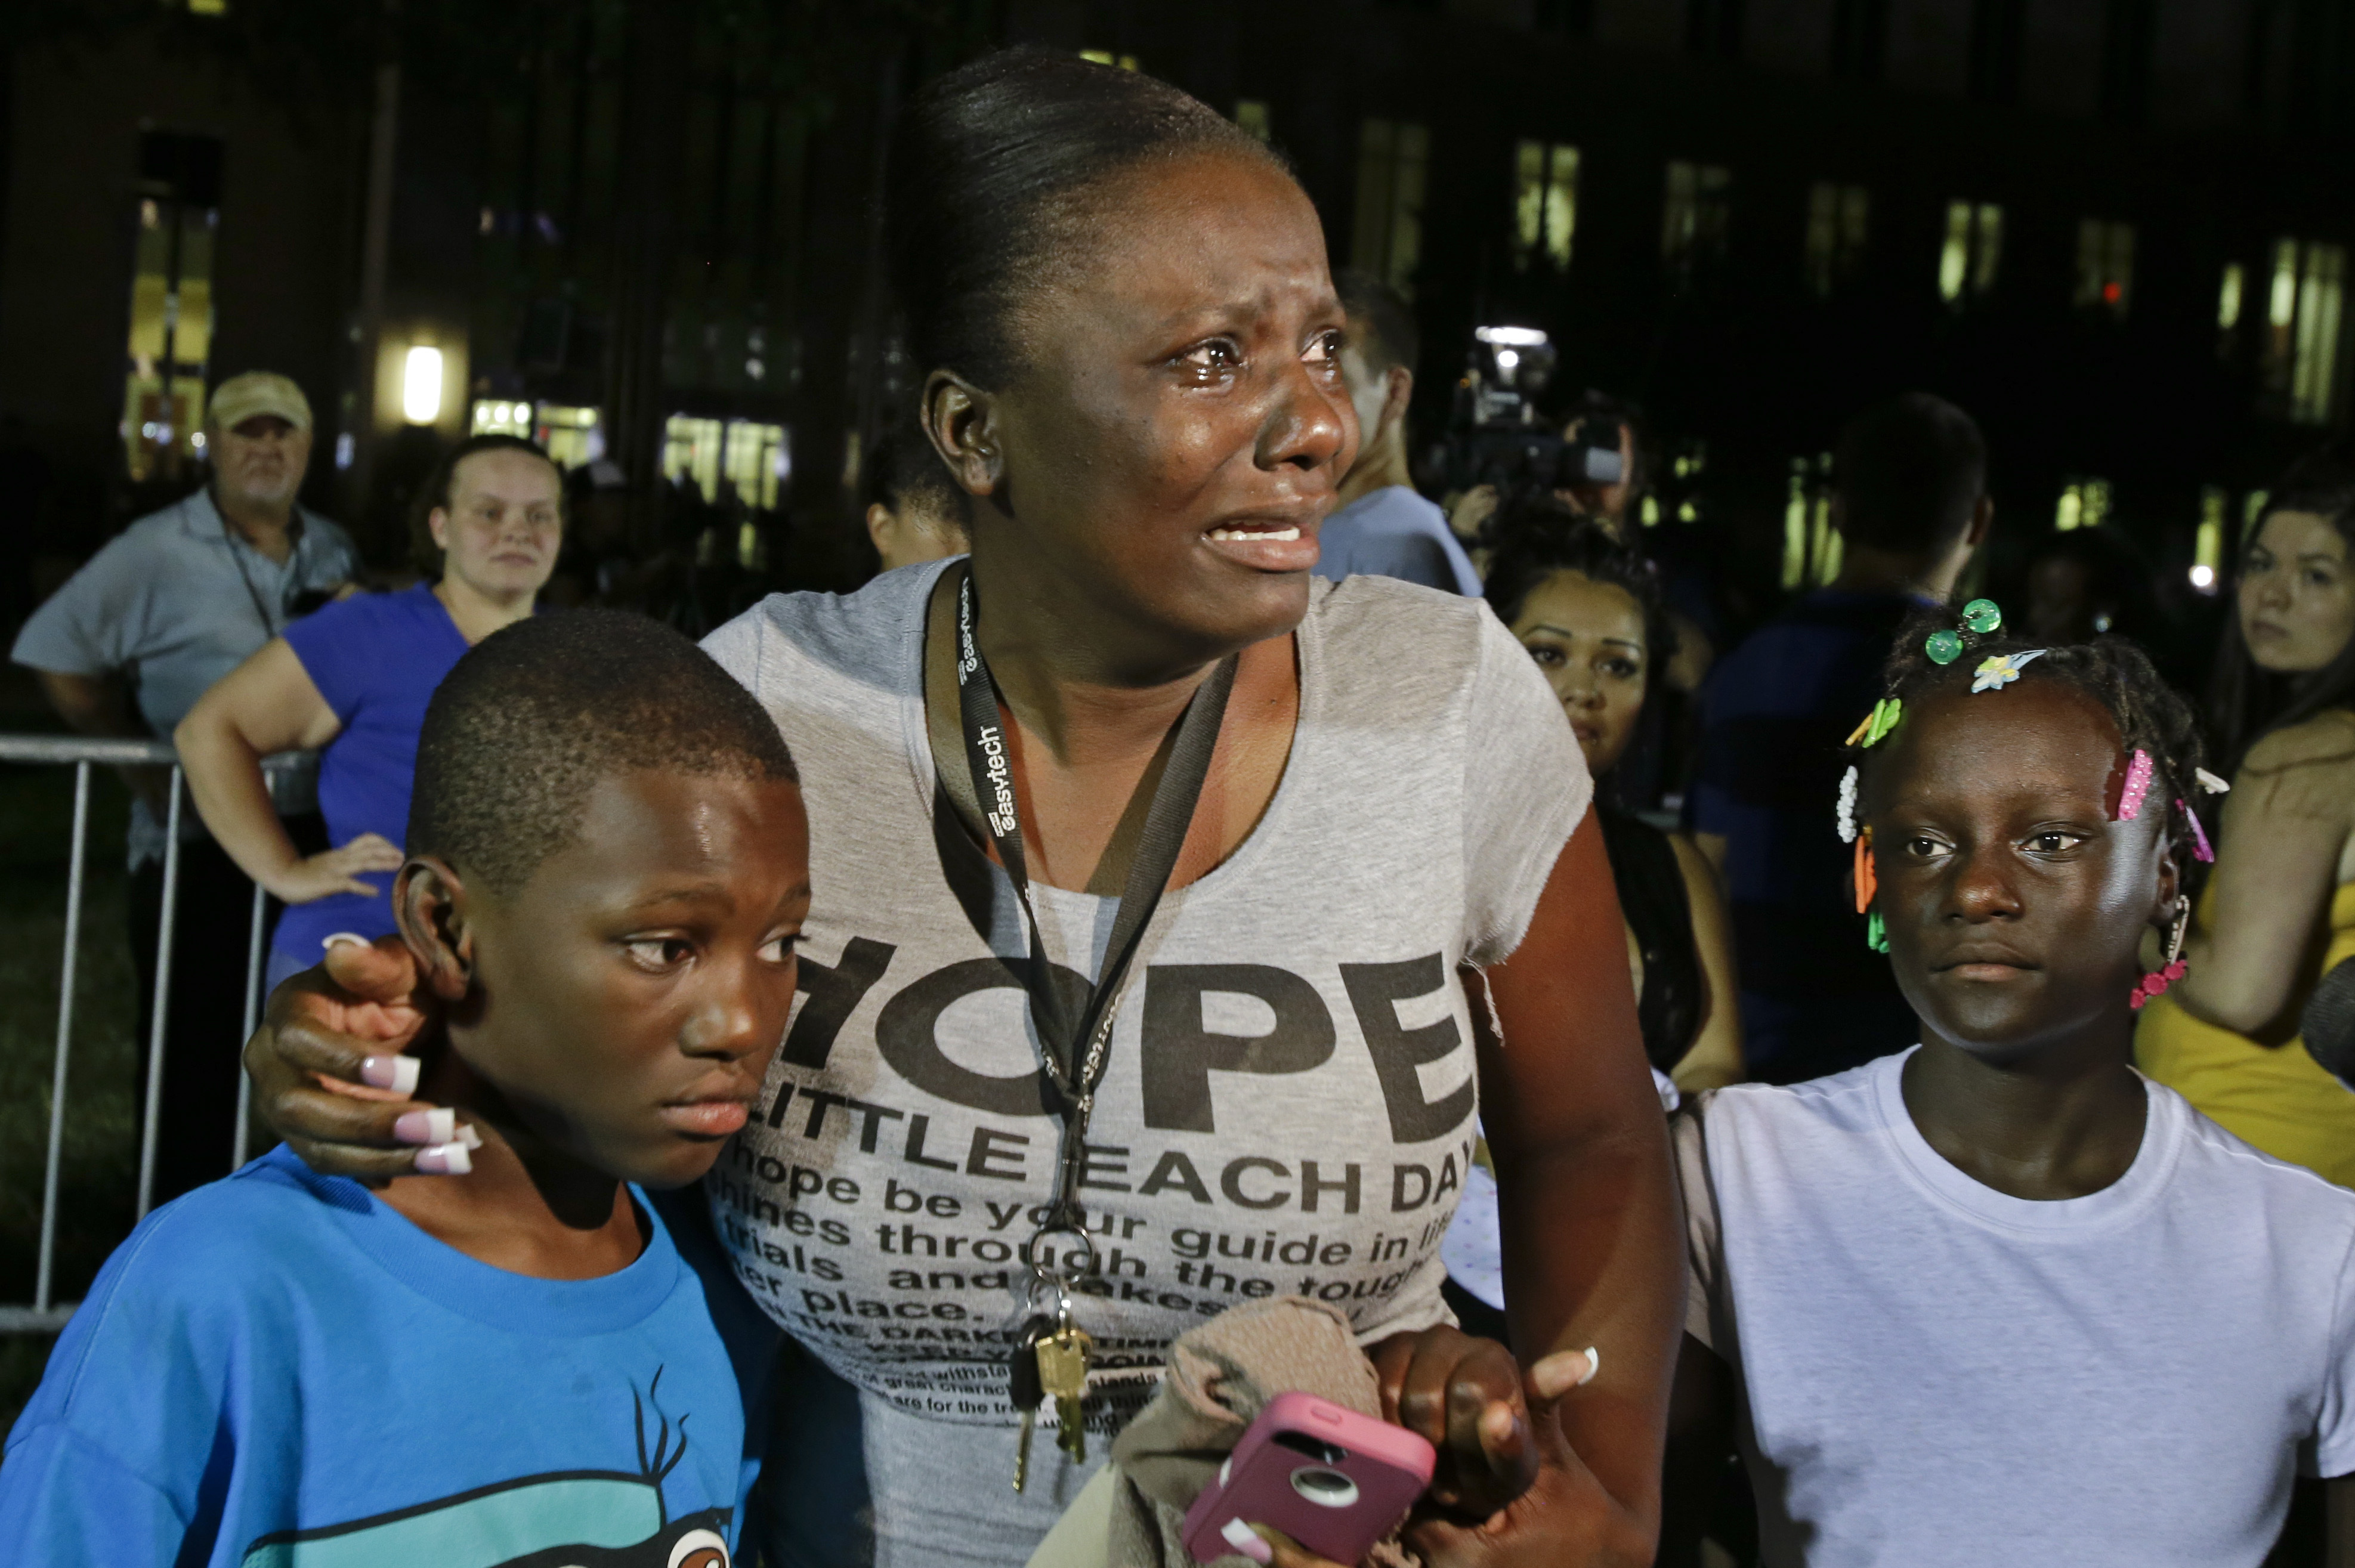 Saturday night, Darrsie Jackson keeps her children -- Linzey Stafford, left, 10, and Shauntina Stafford, 11 -- close after hearing the not-guilty verdict in the trial of George Zimmerman outside the Seminole County Courthouse in Sanford.